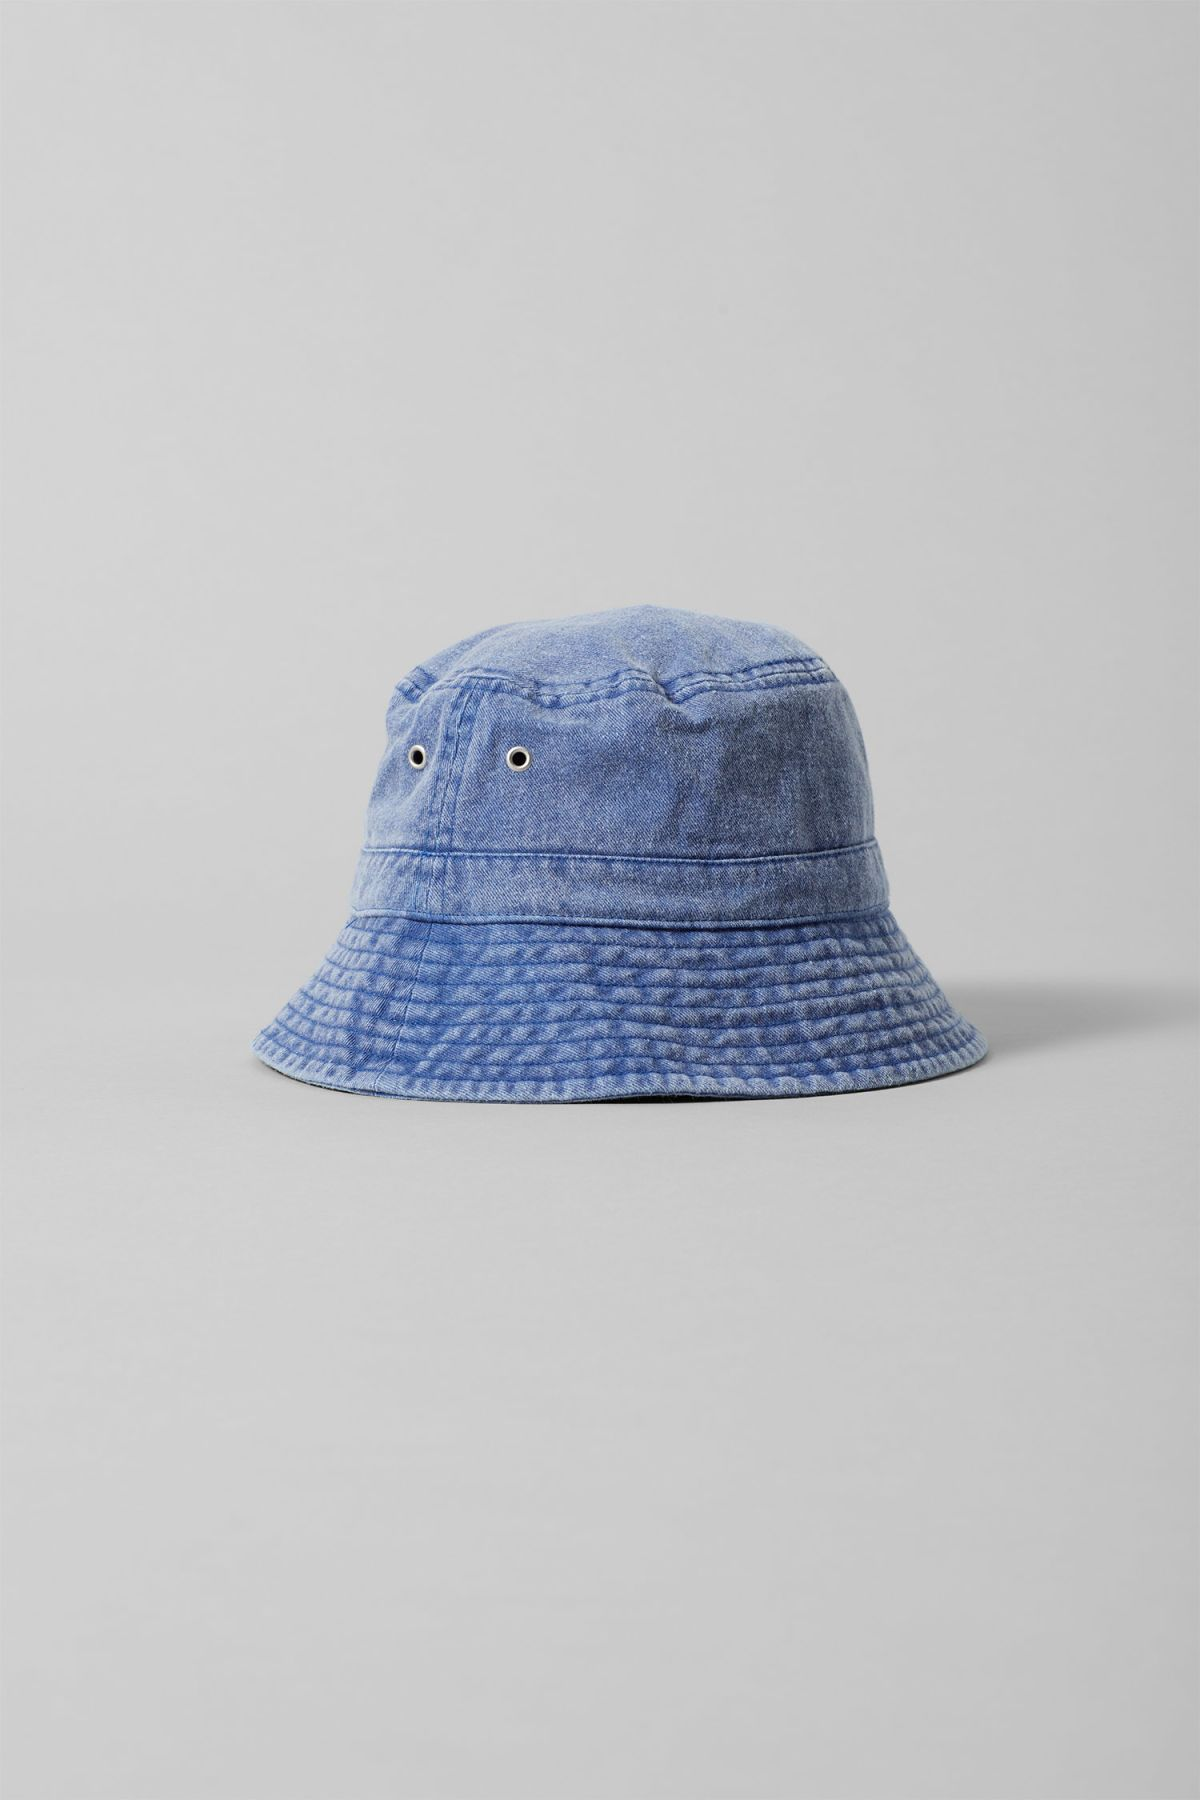 6655106e90b84 The Altitude Bucket Hat is a stand-out accessory crafted in soft denim with  a subtly washed out finish.